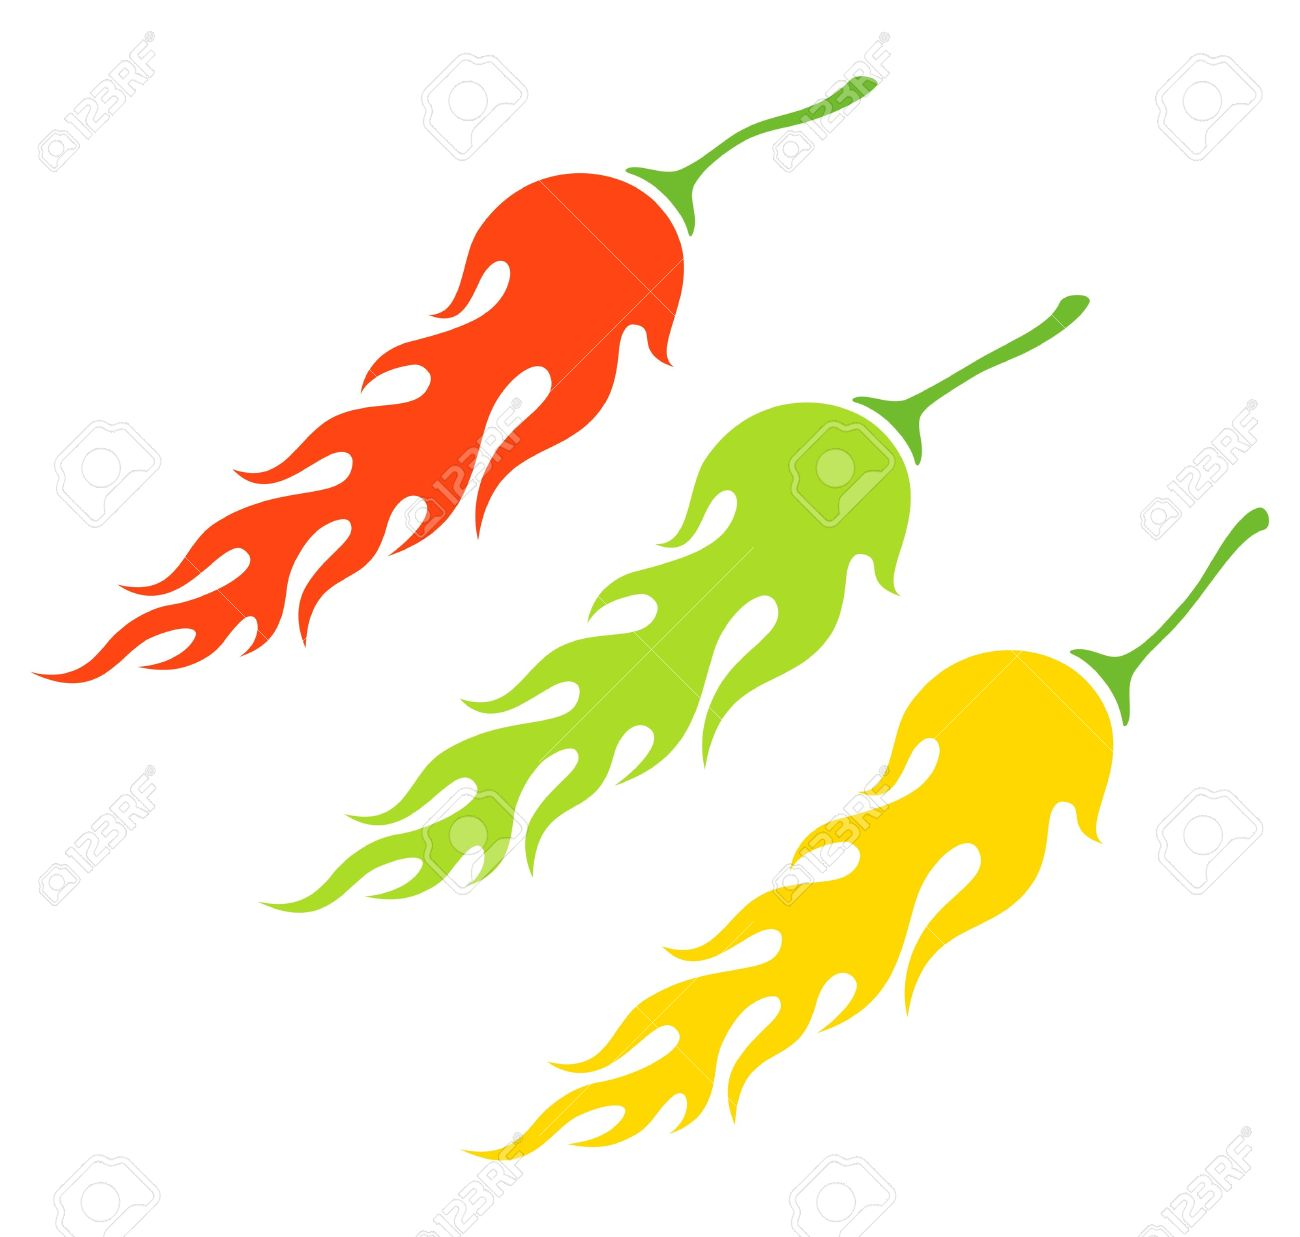 Flaming jalapeno clipart black and white stock Illustration Of The Three Kinds Of Peppers In The Form Of A Flame ... black and white stock